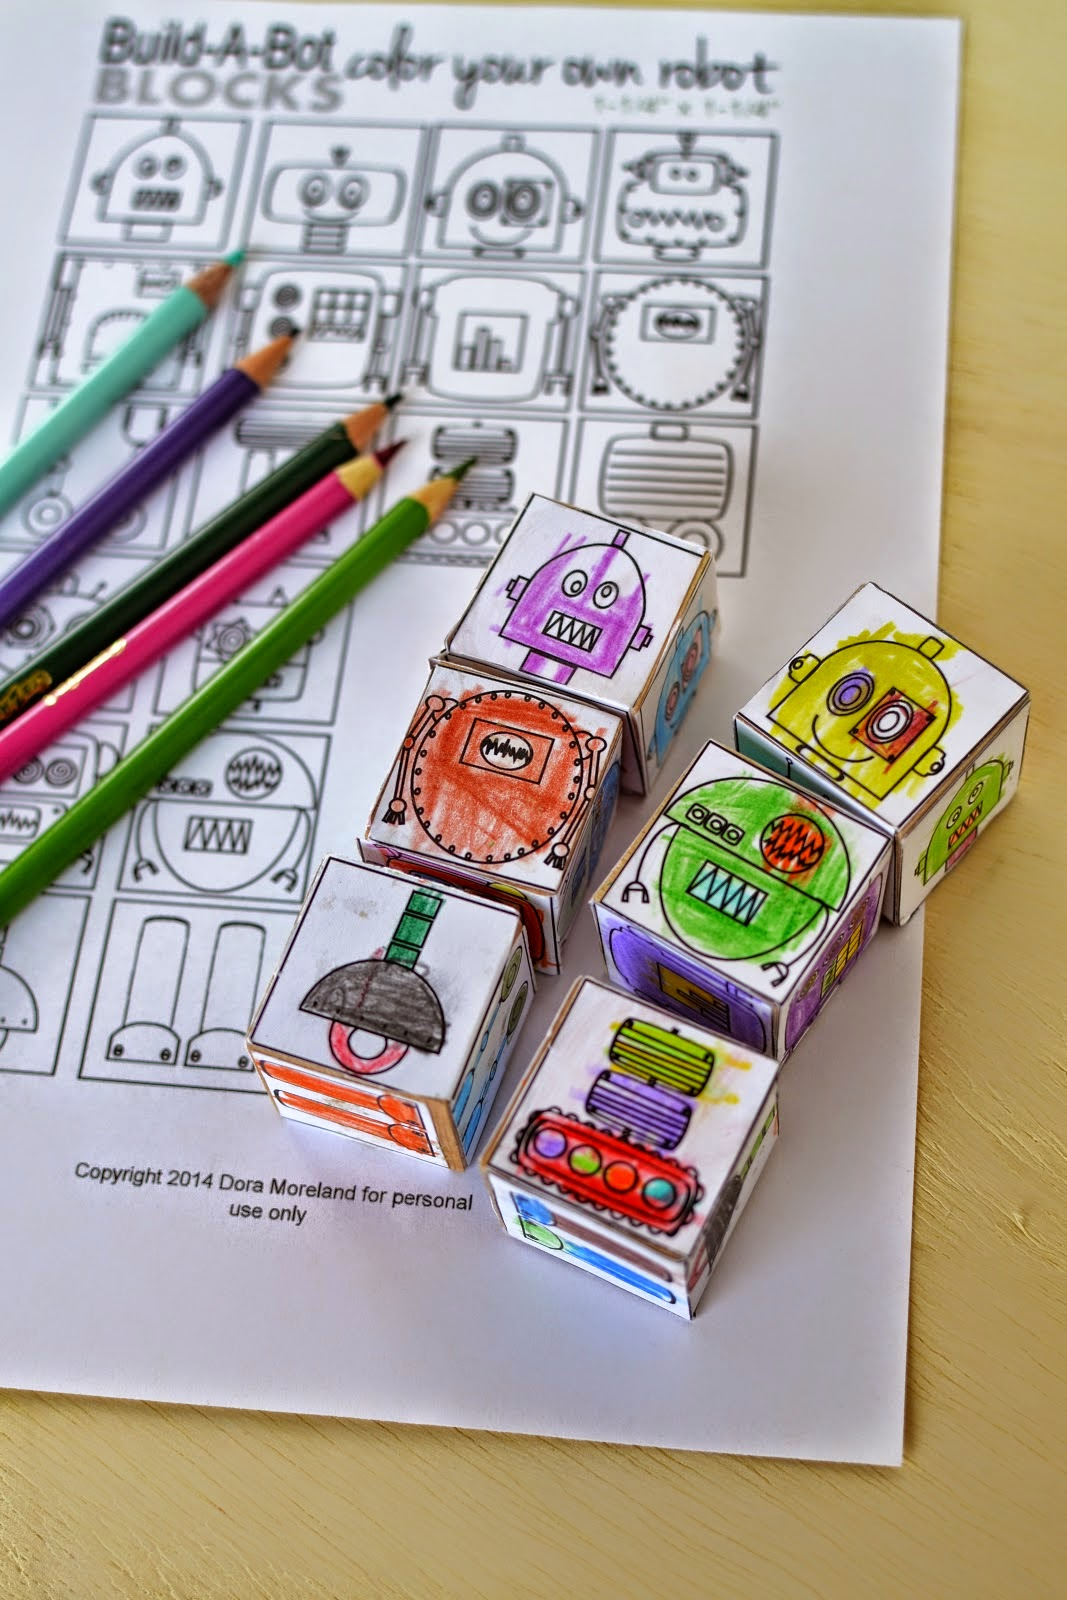 http://plentyofpaprika.blogspot.com/2014/11/diy-mix-match-color-your-own-robot.html